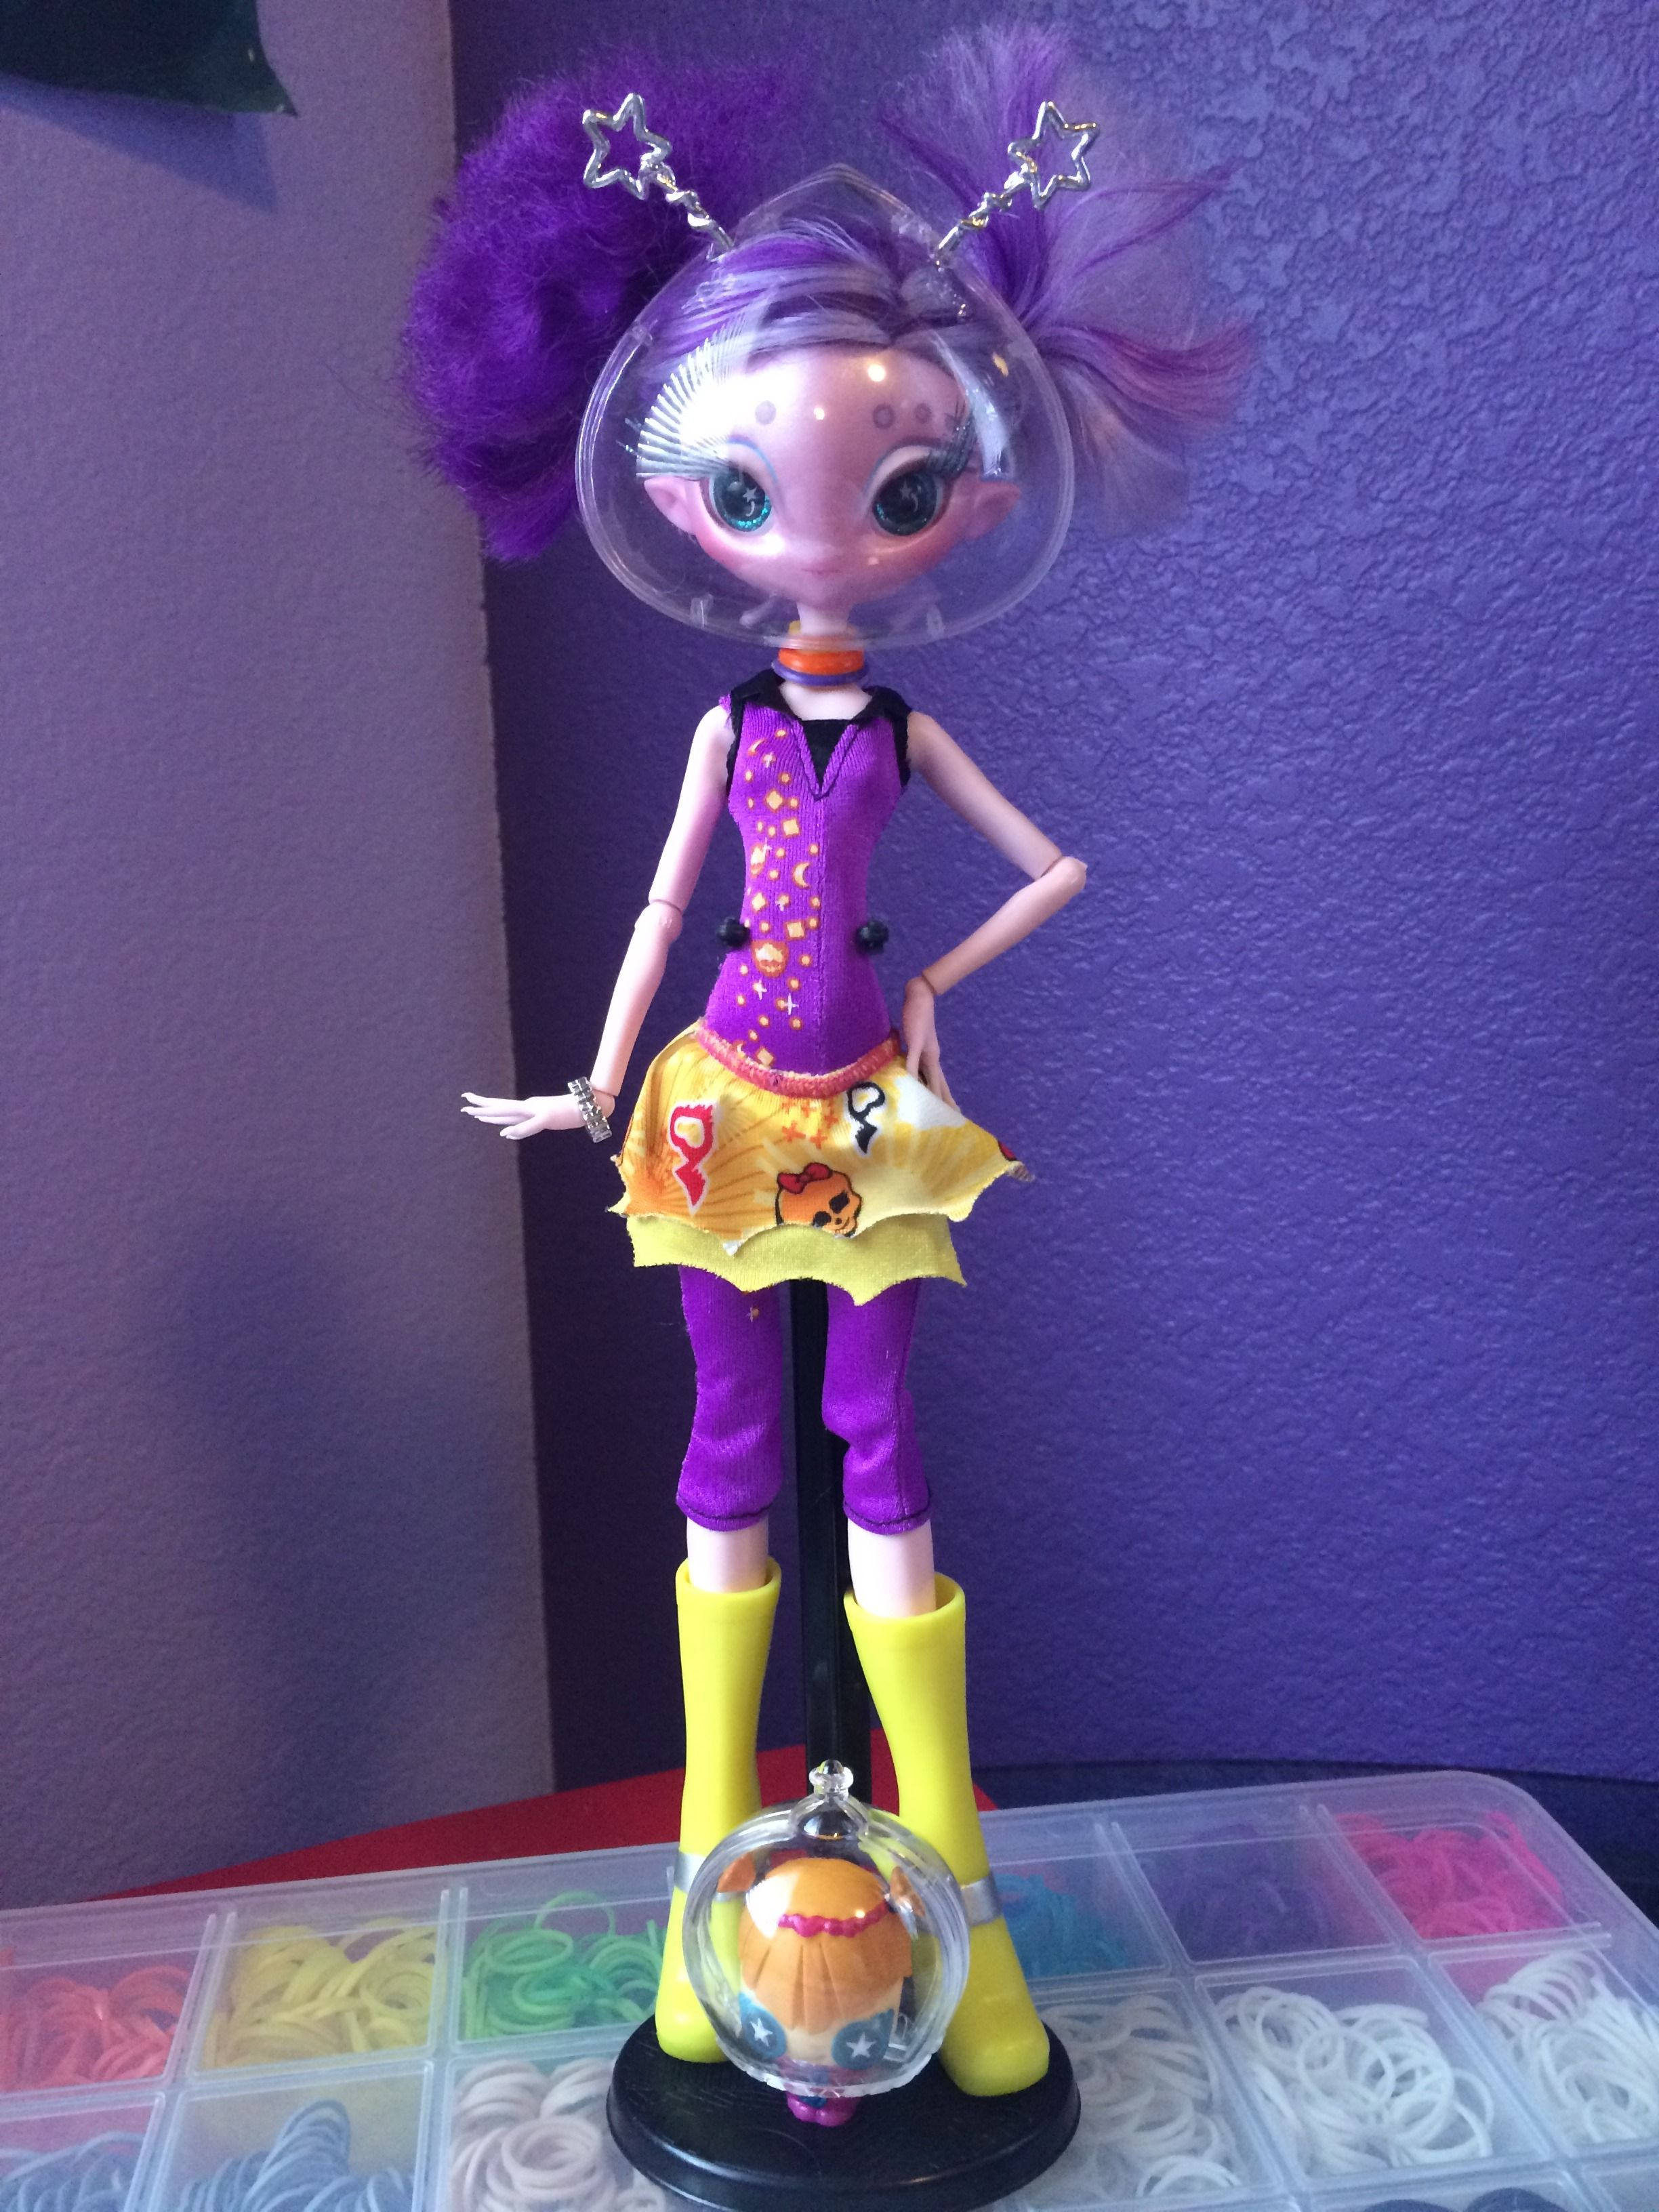 Lovely Novi Stars Doll Bambola Mae Tallick Alien Original Monster Bambole Fashion